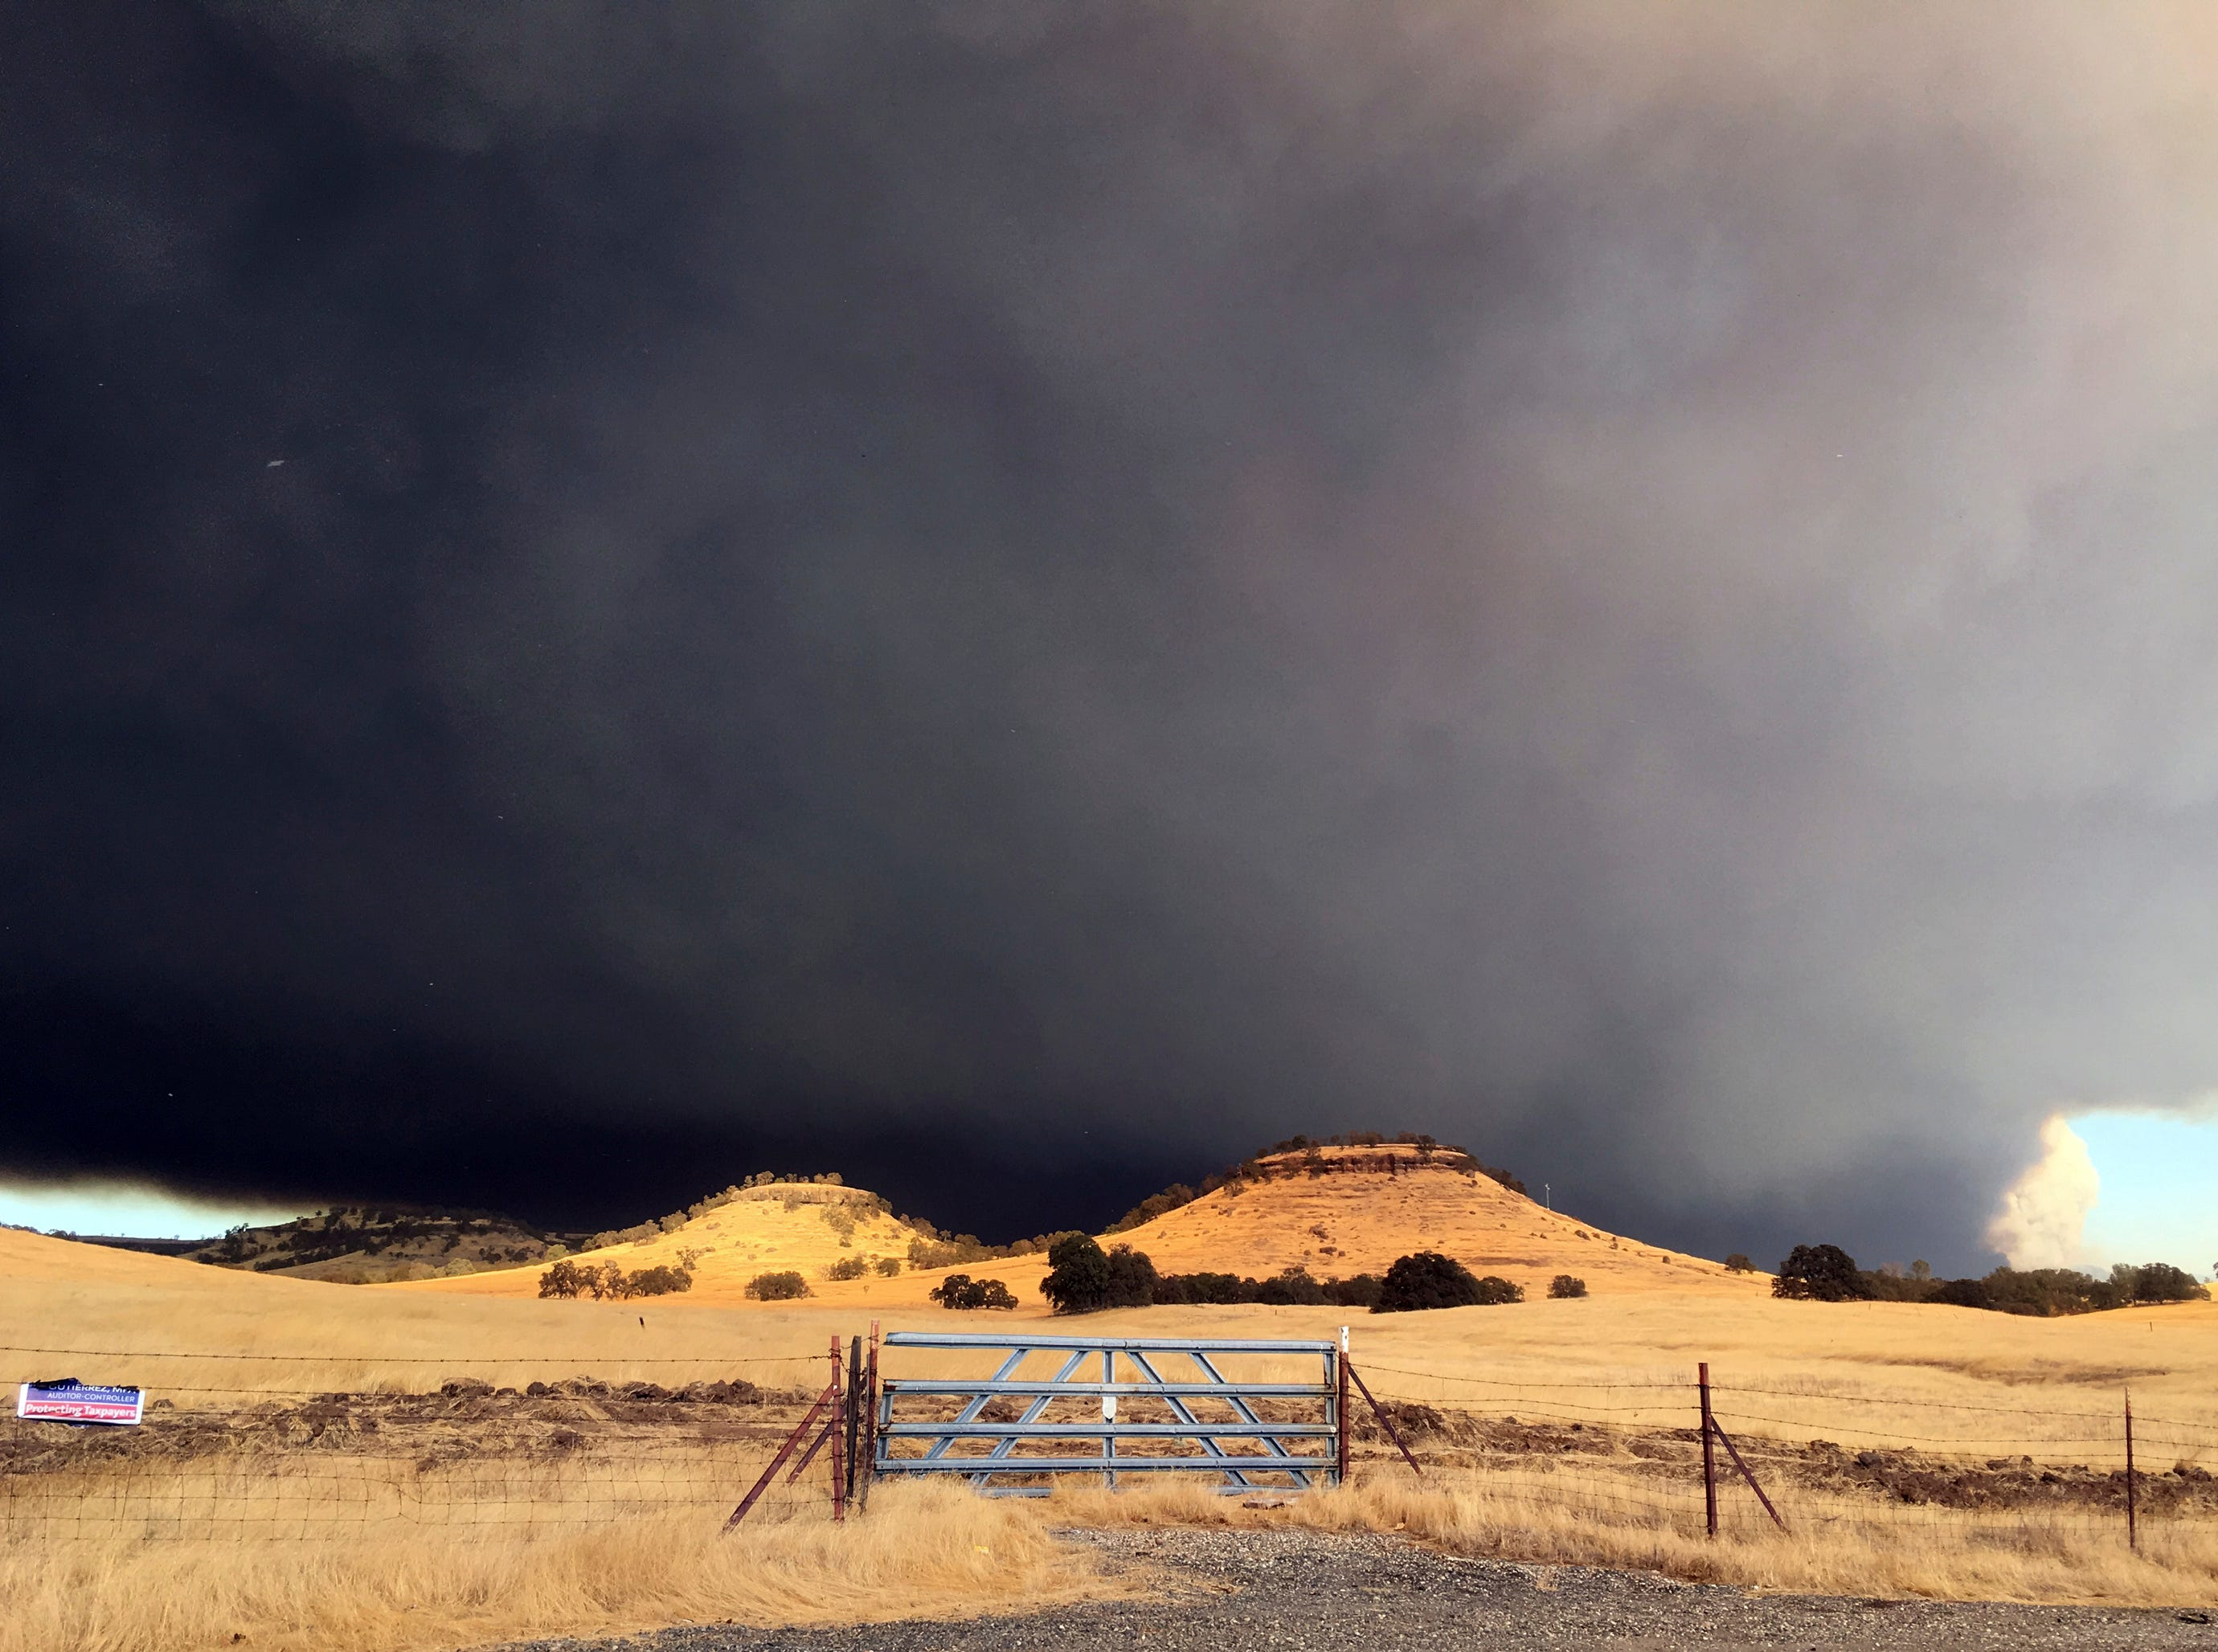 Smoke from the Camp Fire, burning in the Feather River Canyon near Paradise, Calif., darkens the sky Thursday, Nov. 8, 2018.